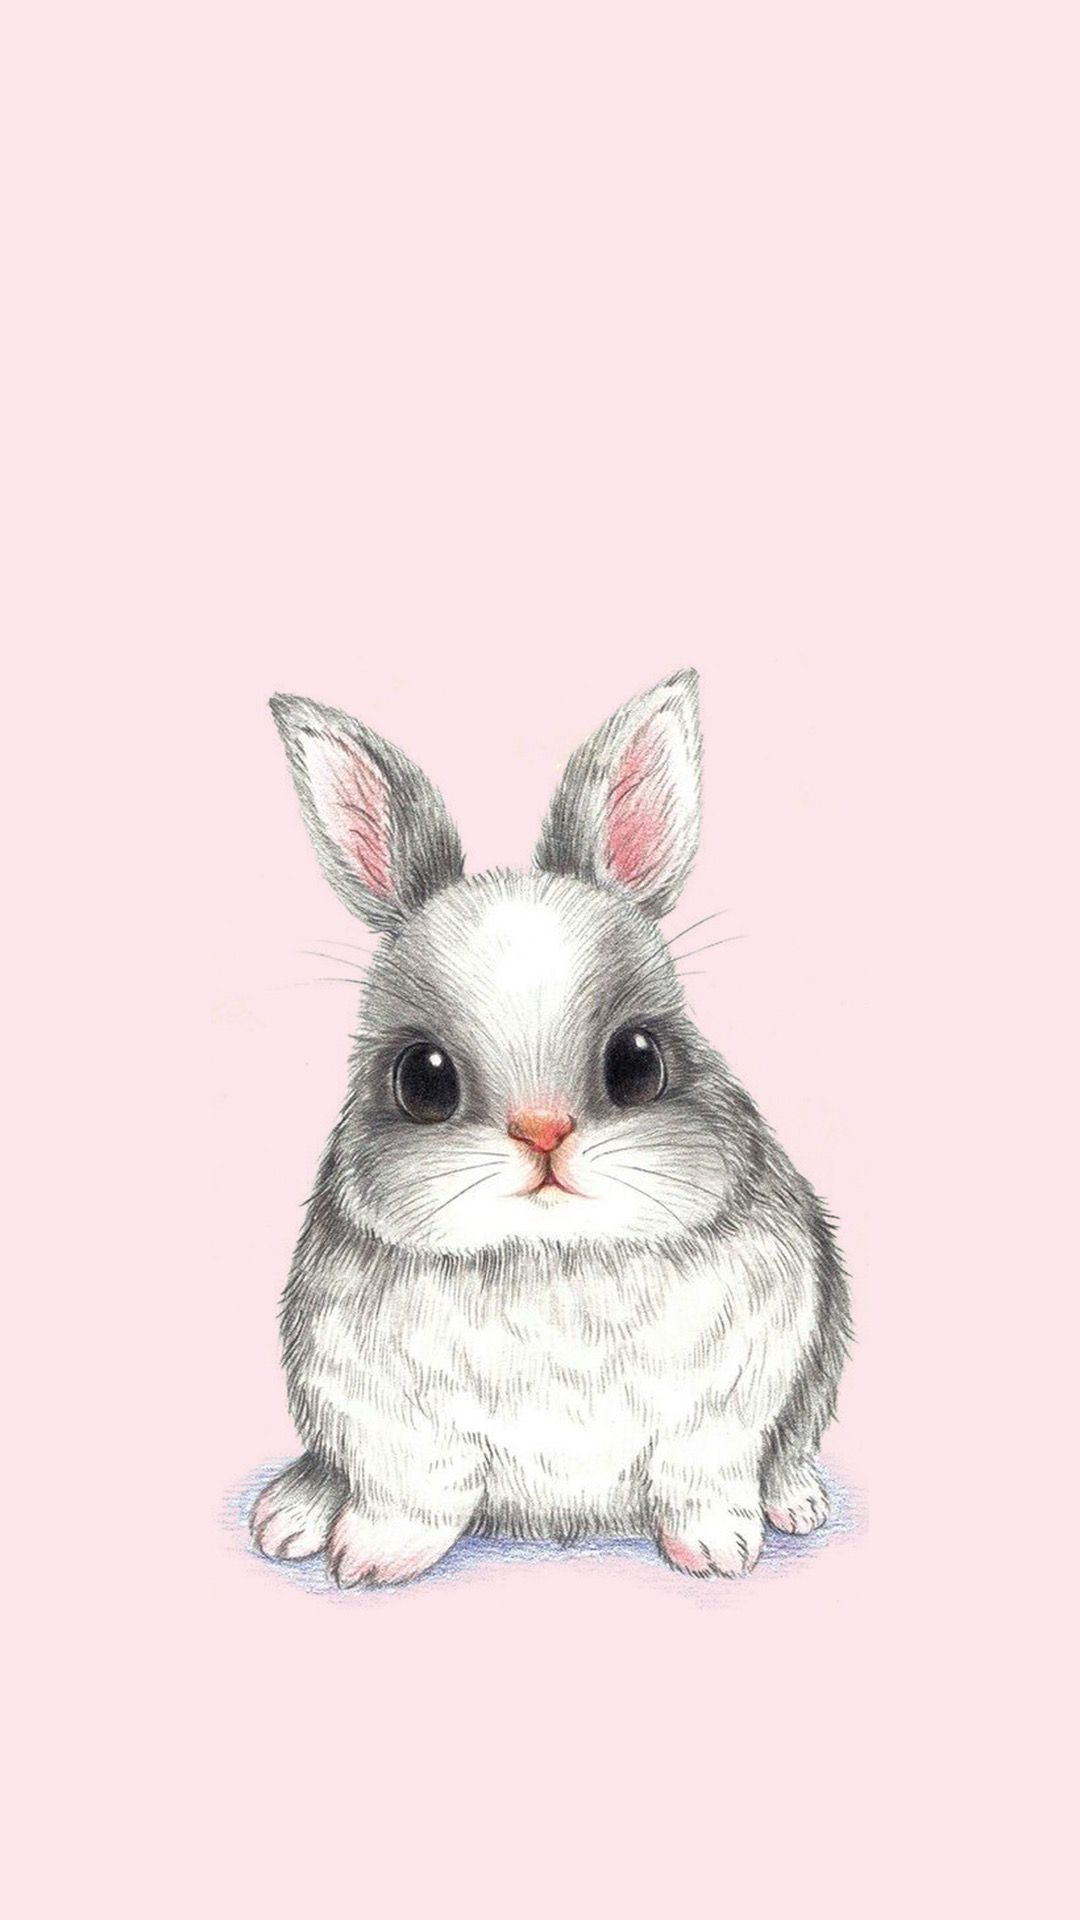 Bunny Rabbit Phone Wallpaper Bunny Wallpaper Bunny Drawing